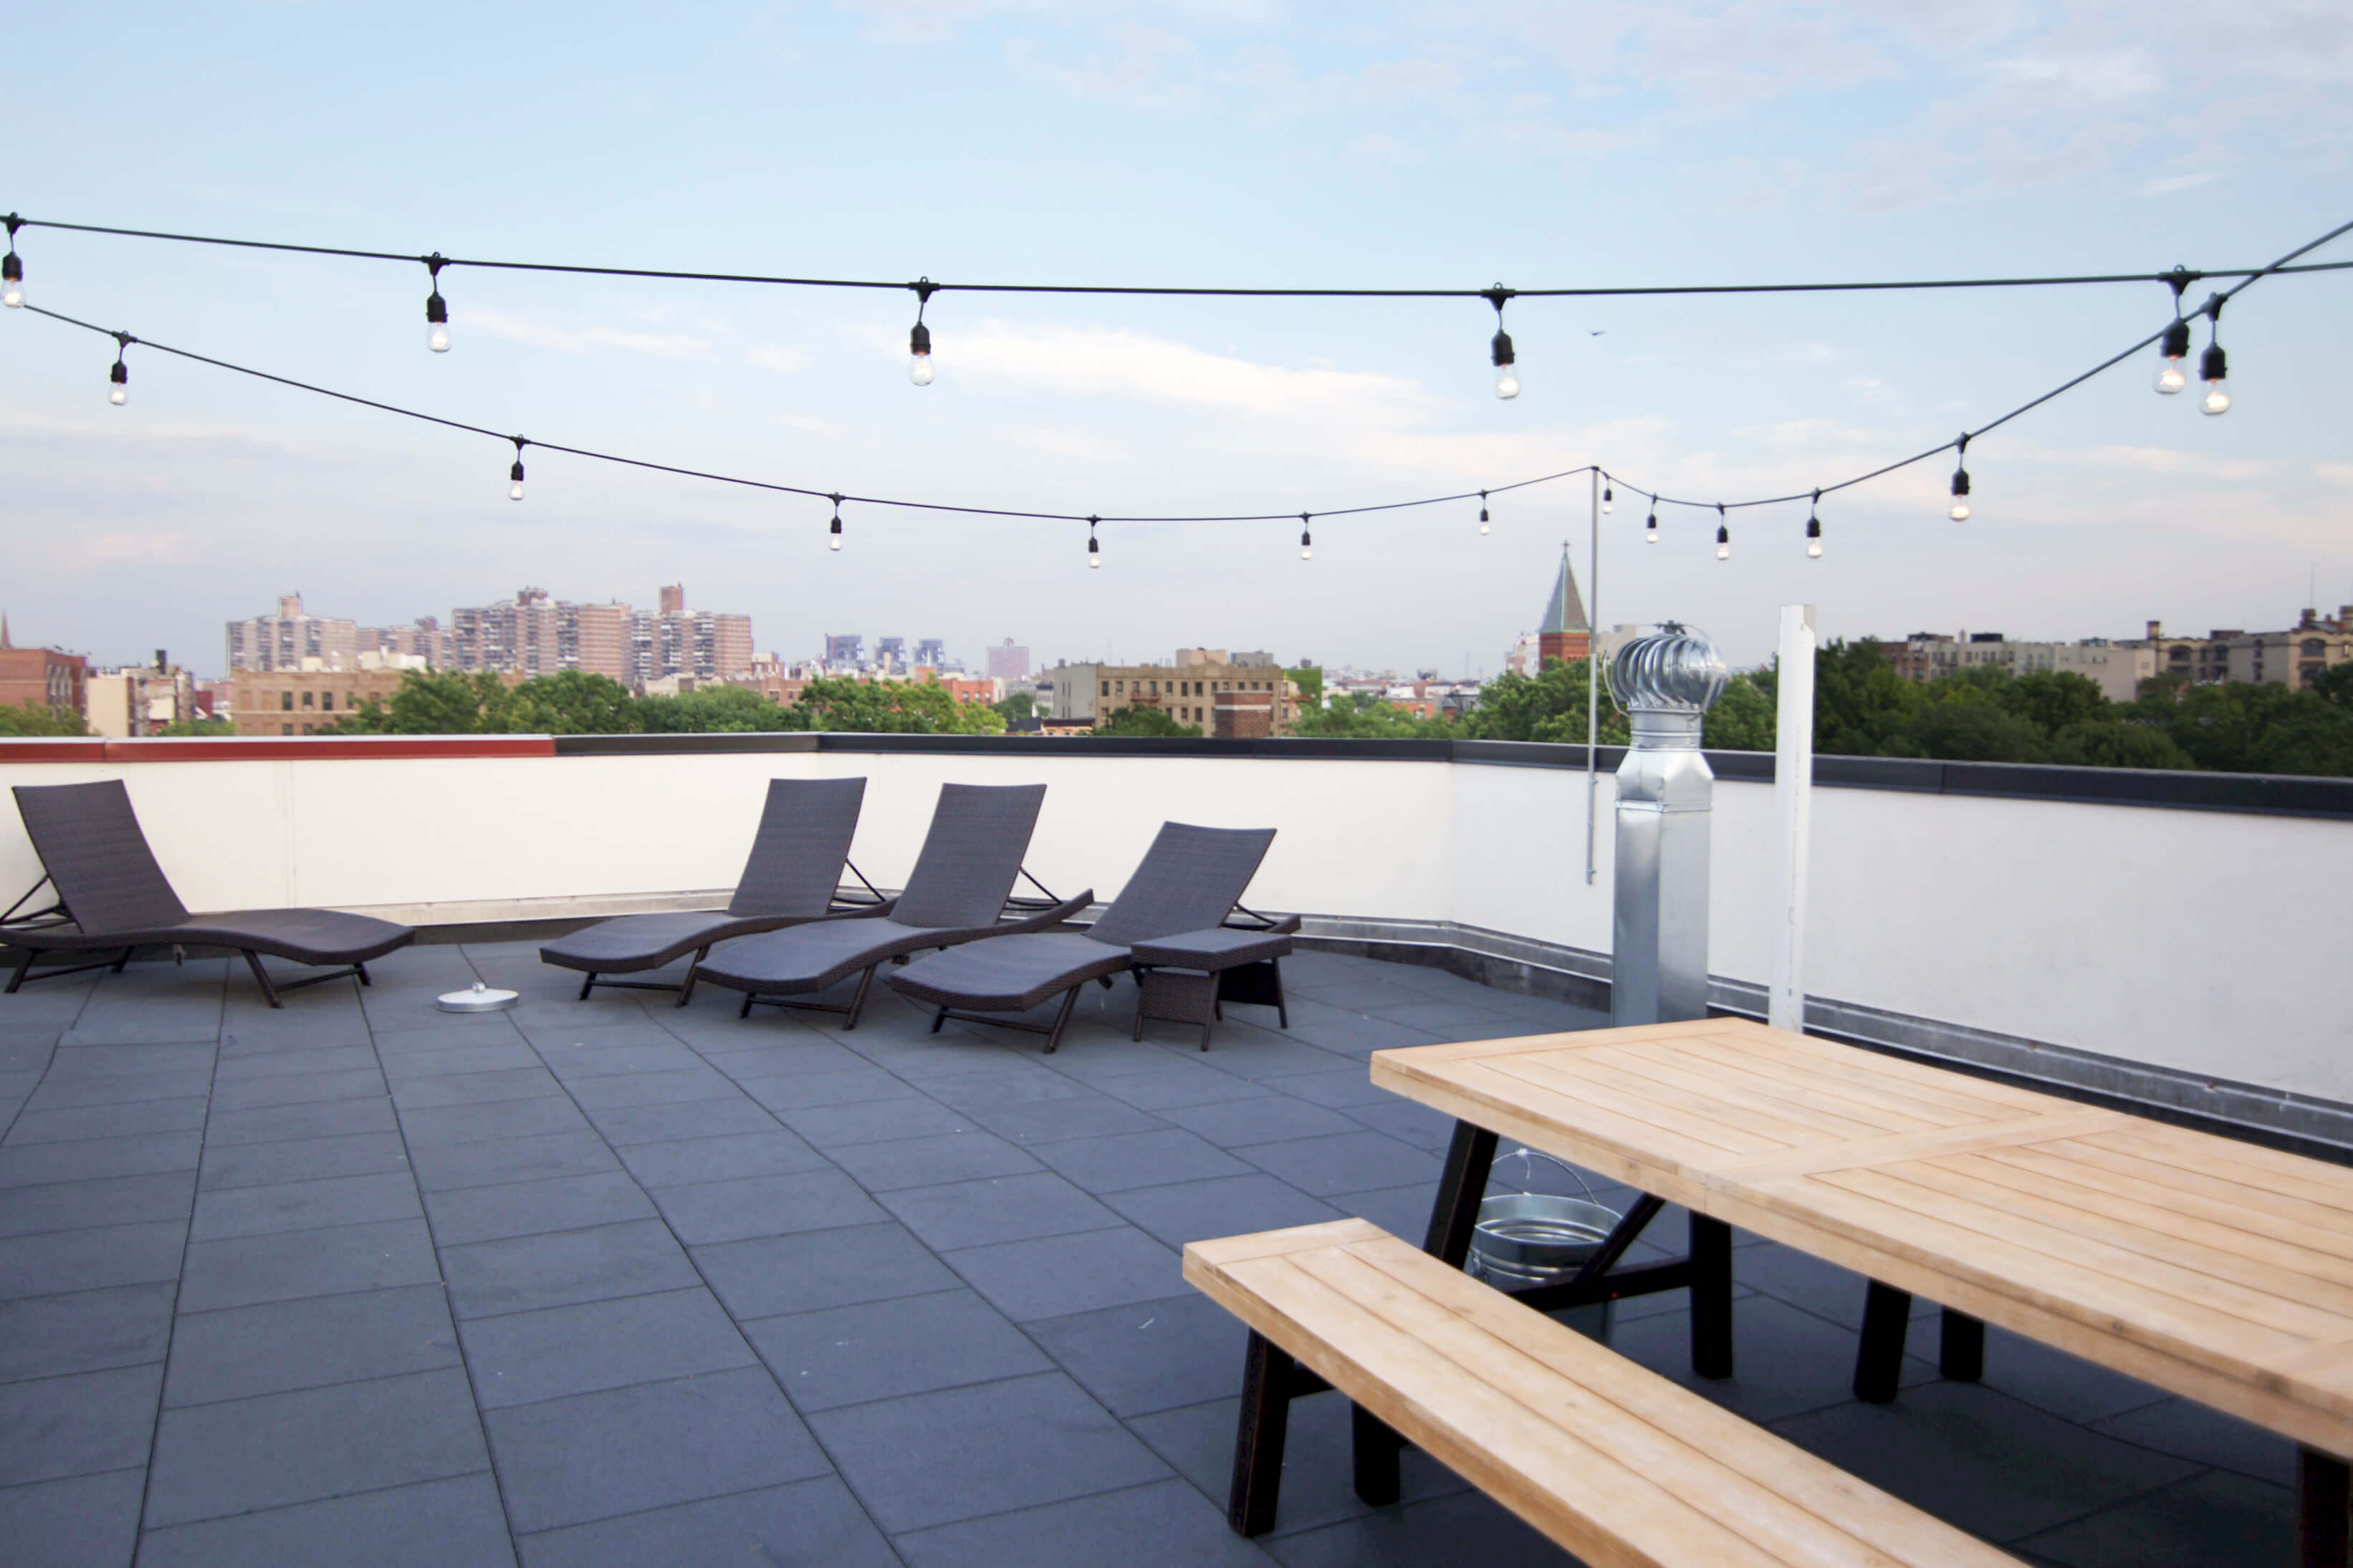 Every Common home has common areas for the entire home to hang out in. Pictured the rooftop at Common Havemeyer in Williamsburg, Brooklyn.